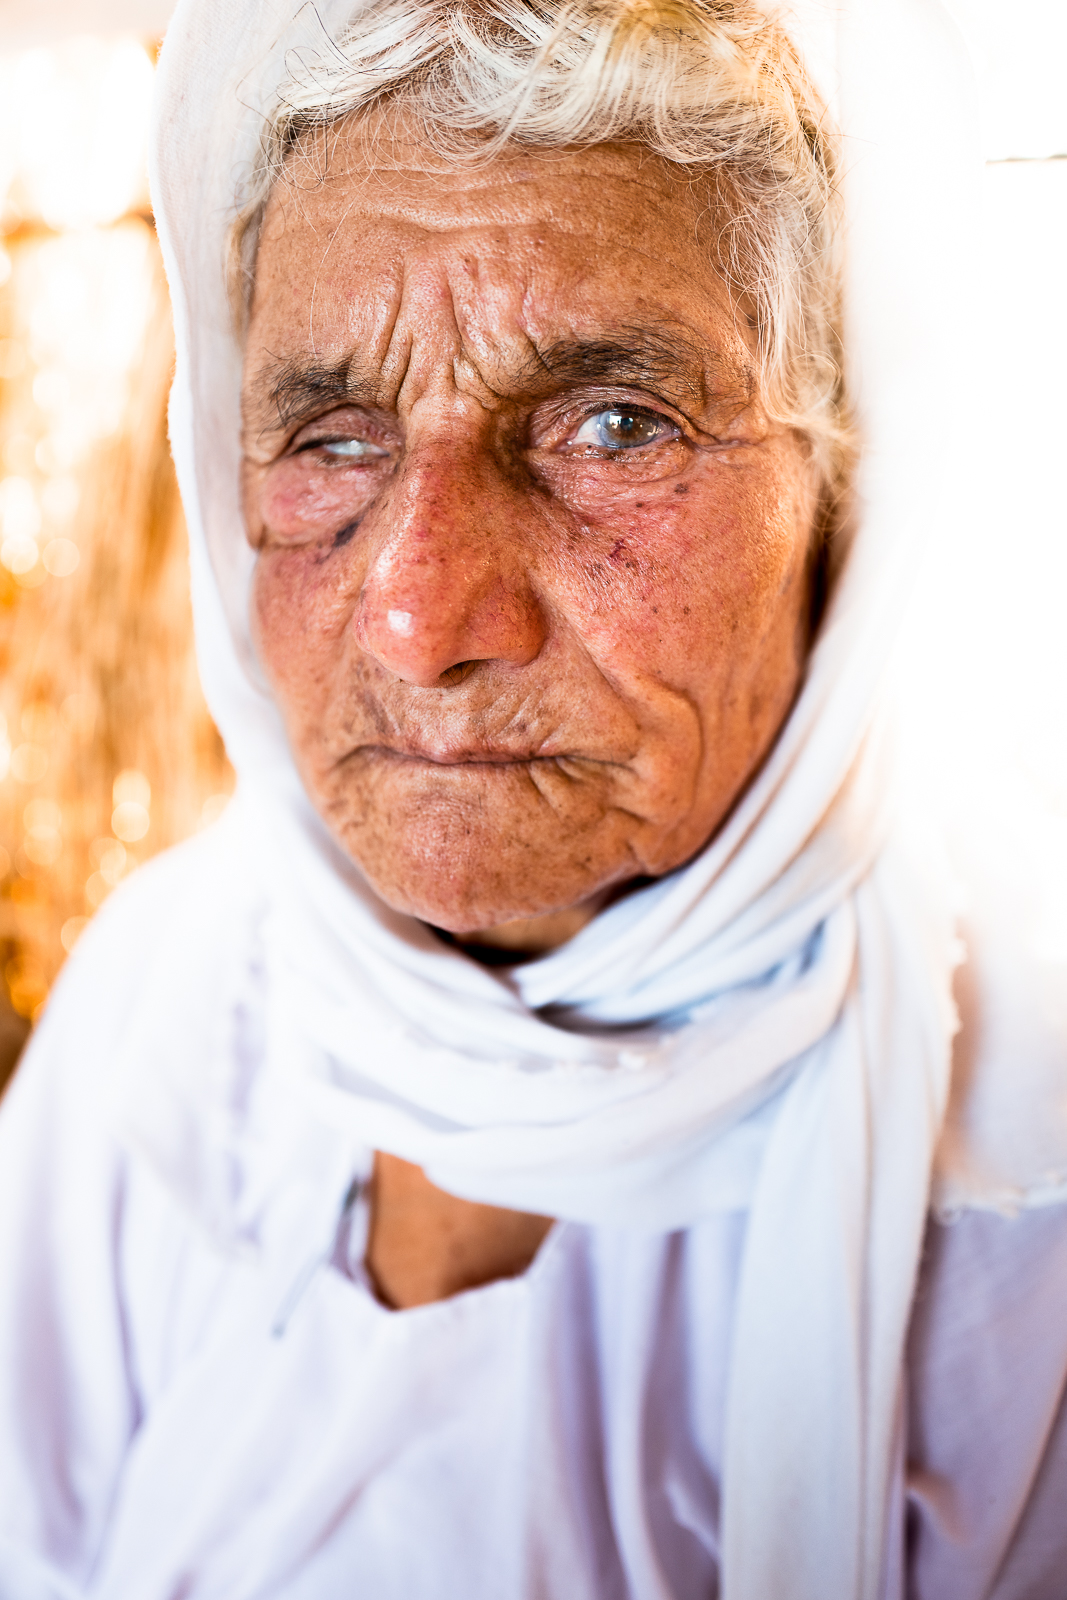 Old woman in a unofficial refugees camp on the border of the street near Douhk